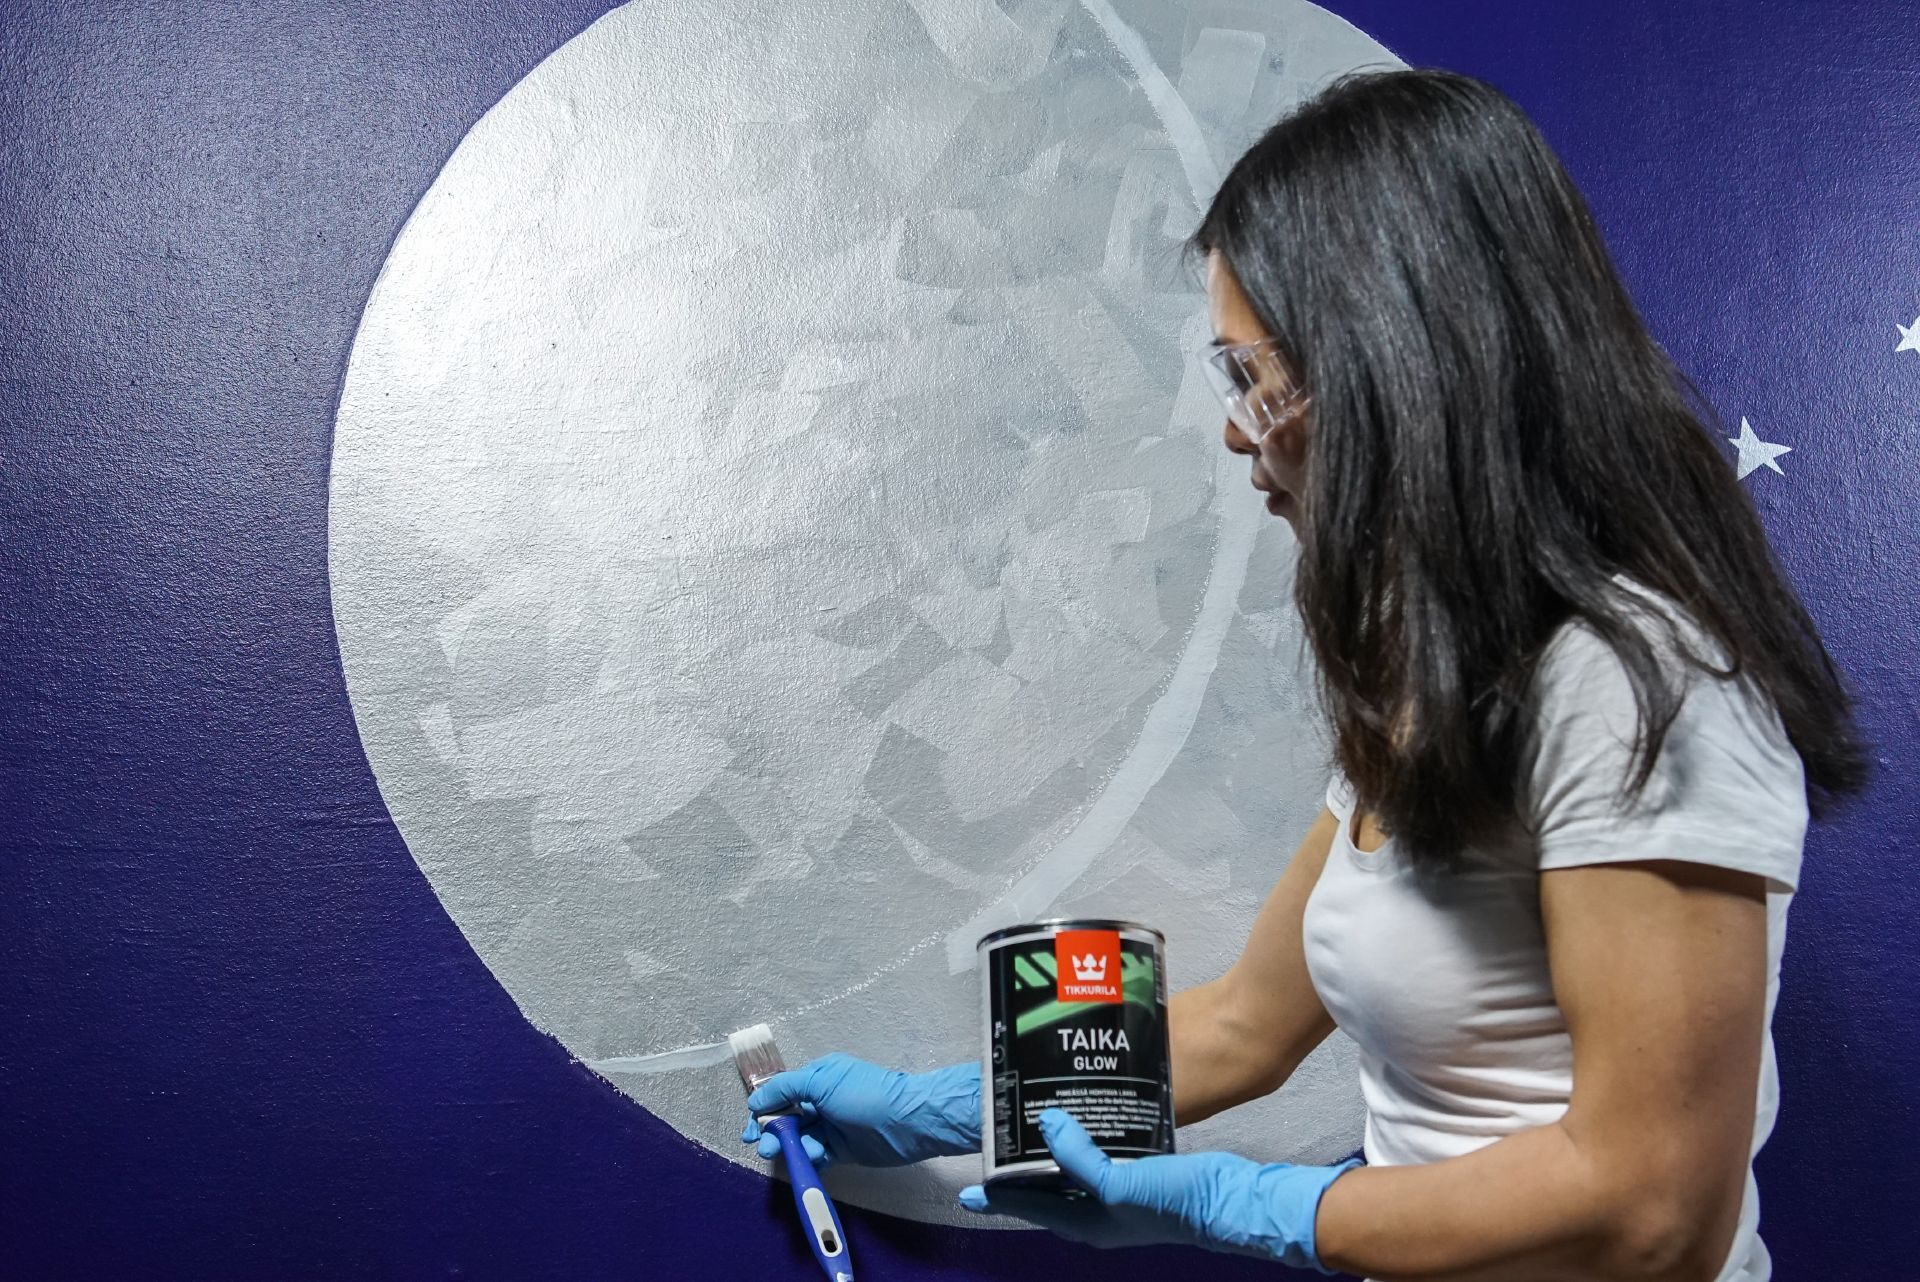 moon painted on wall